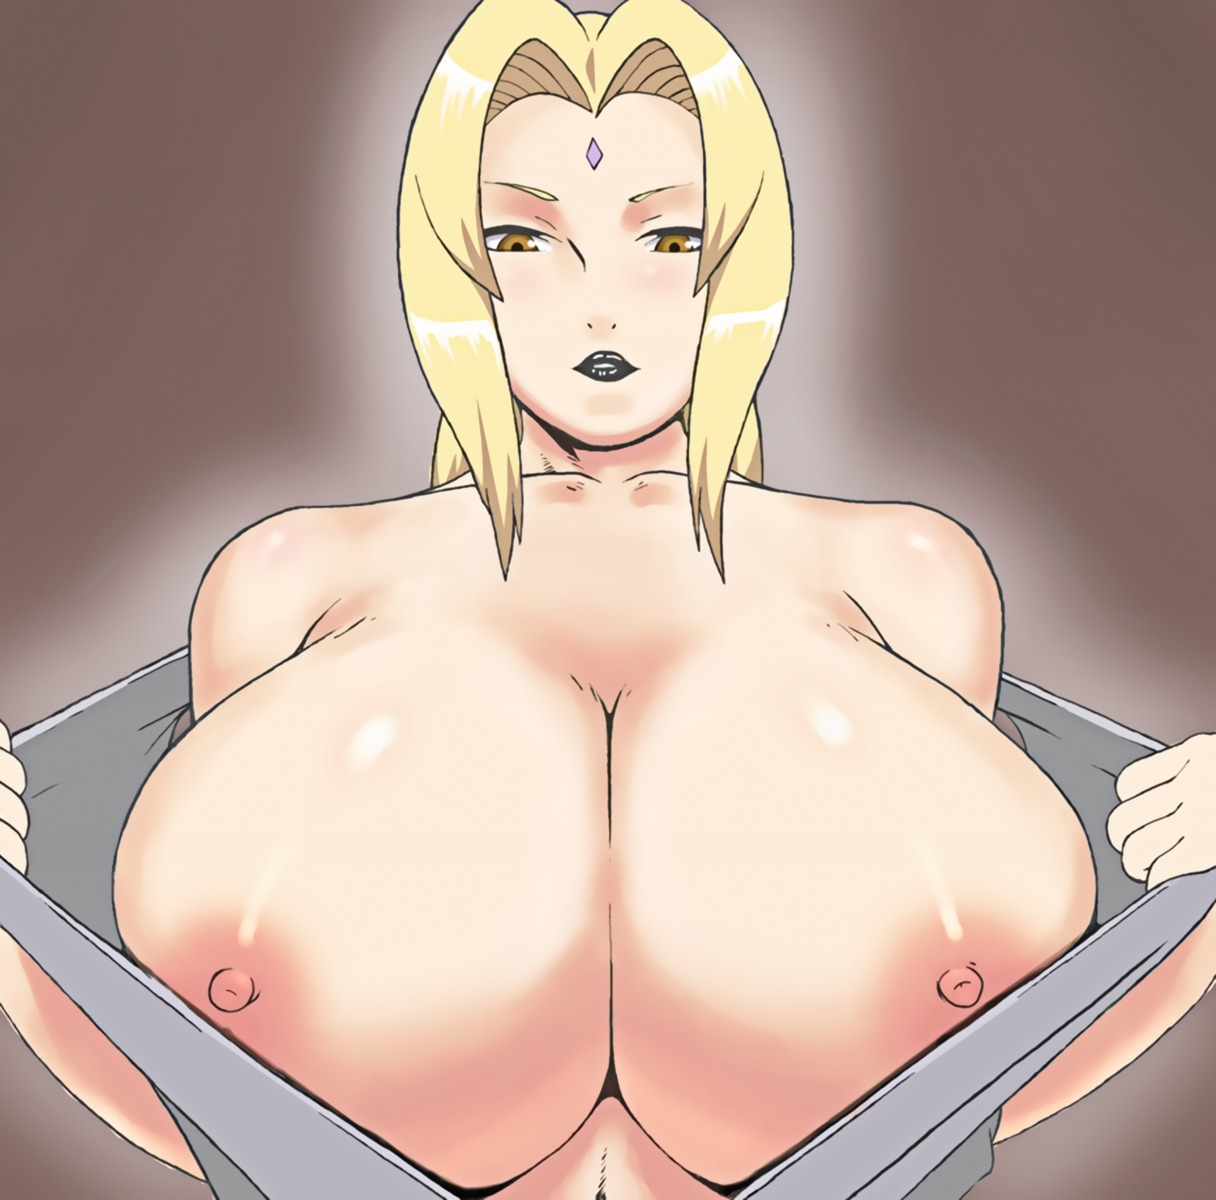 apostle breasts naruto nipples no_bra open_shirt tsunade